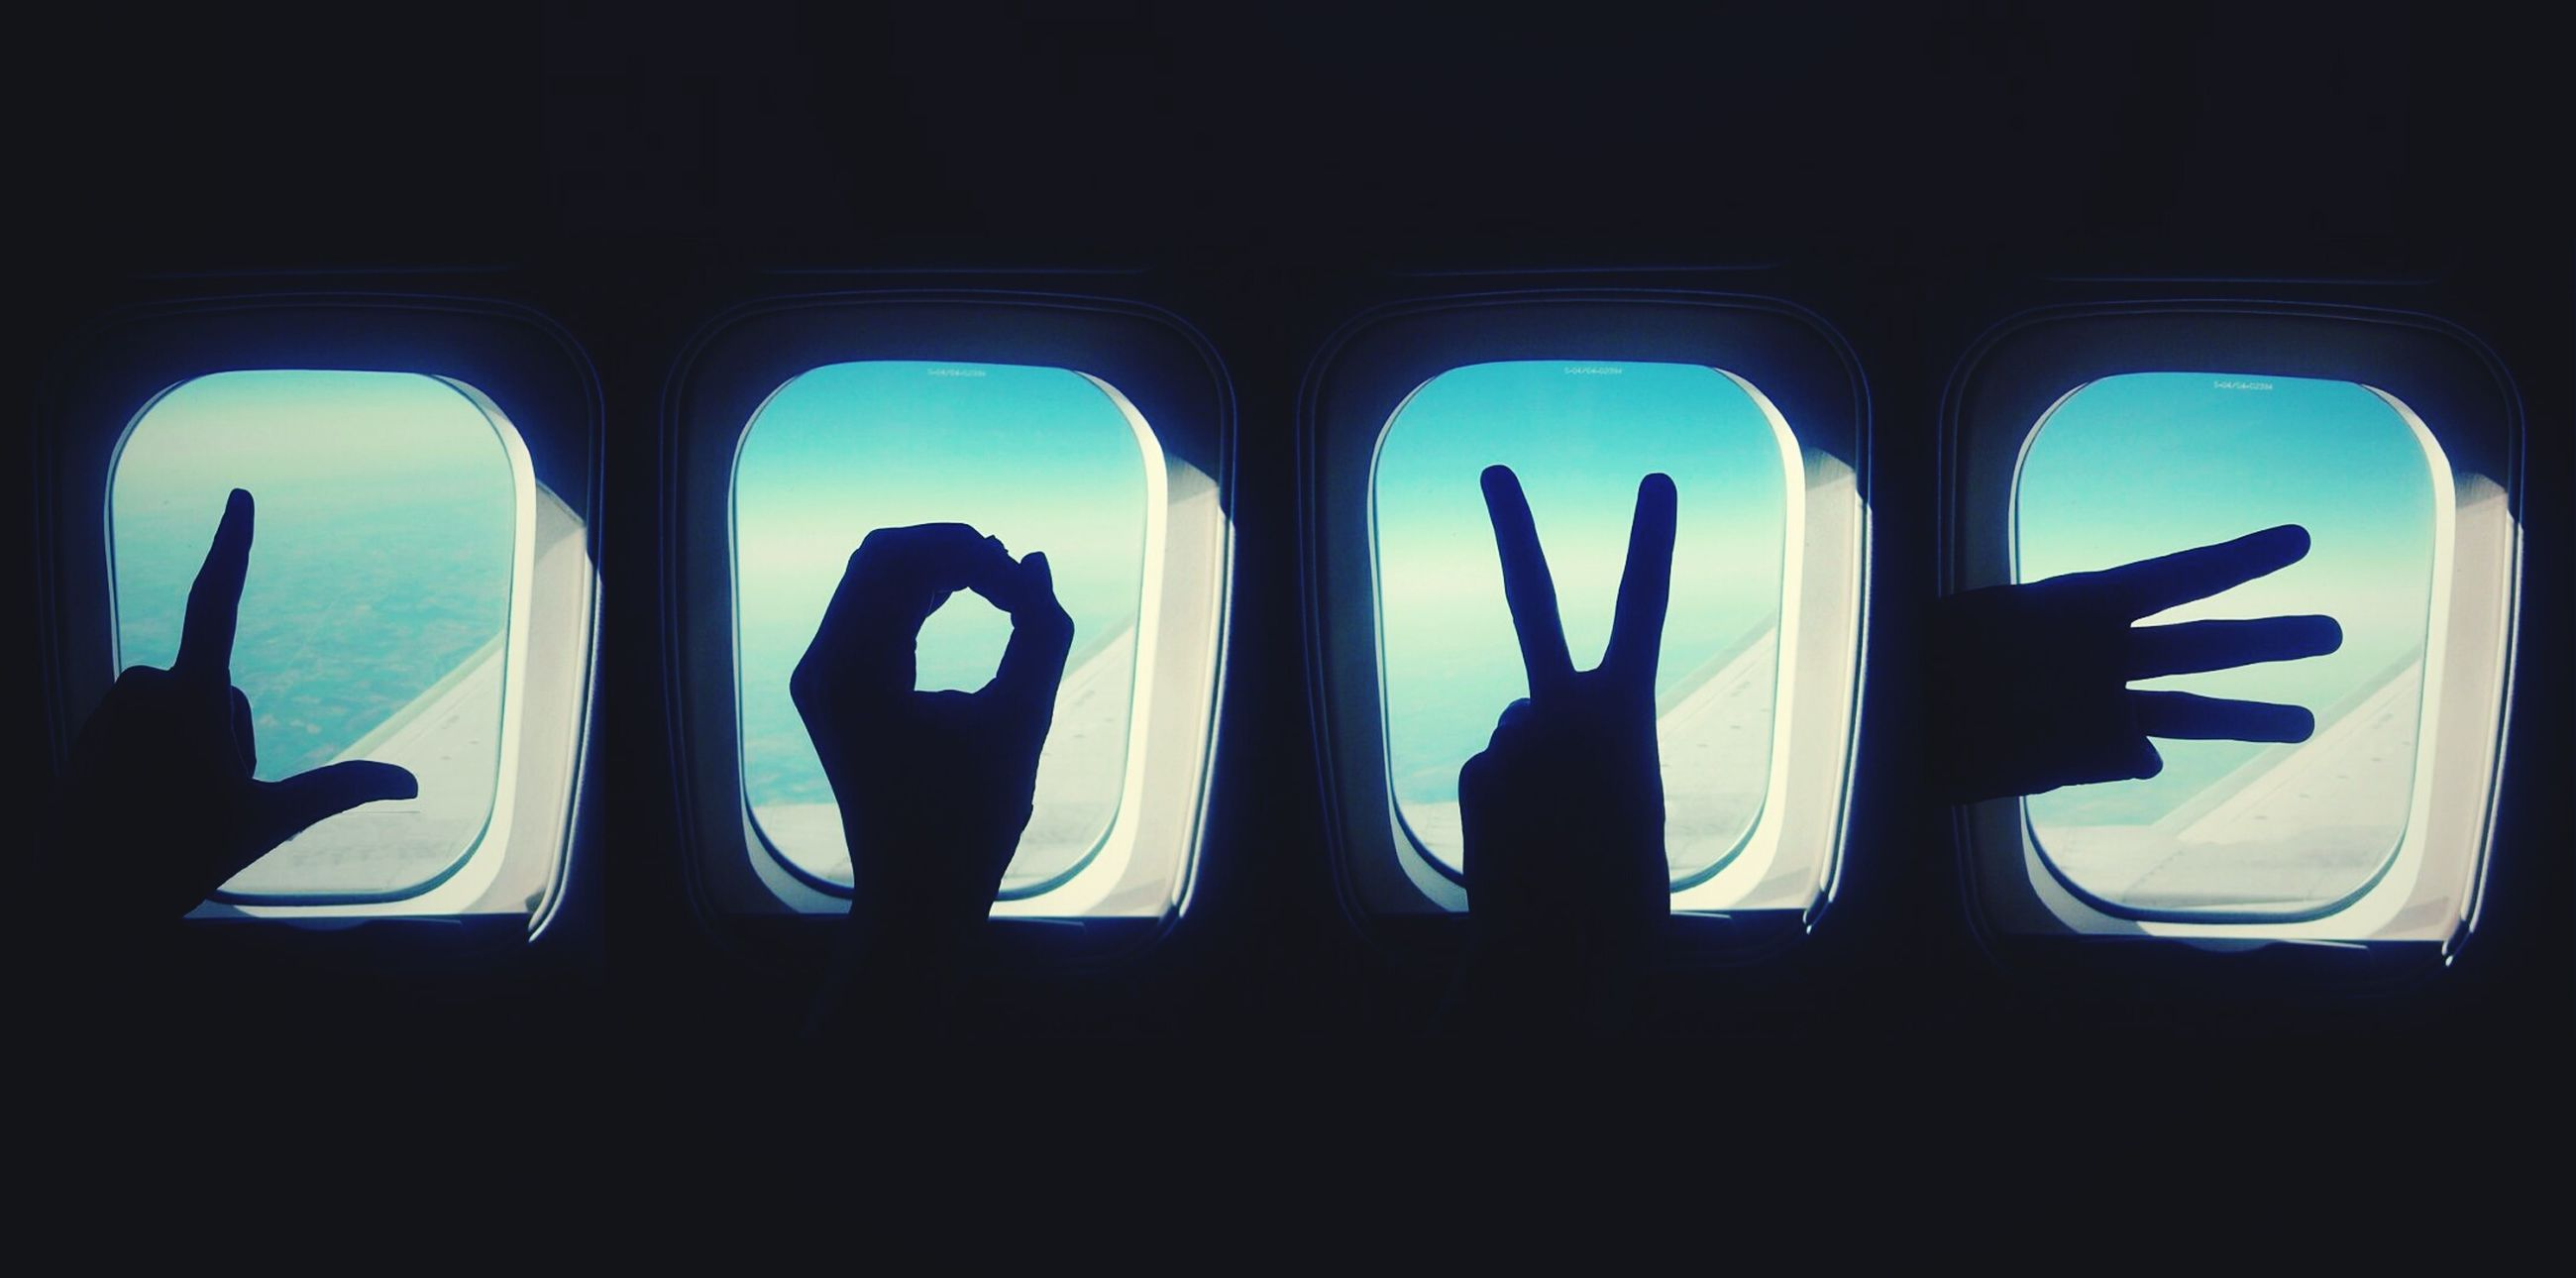 person, silhouette, unrecognizable person, window, lifestyles, cactus, gesturing, reaching, hand sign, blue, peace sign, sky, limb, human finger, exploration